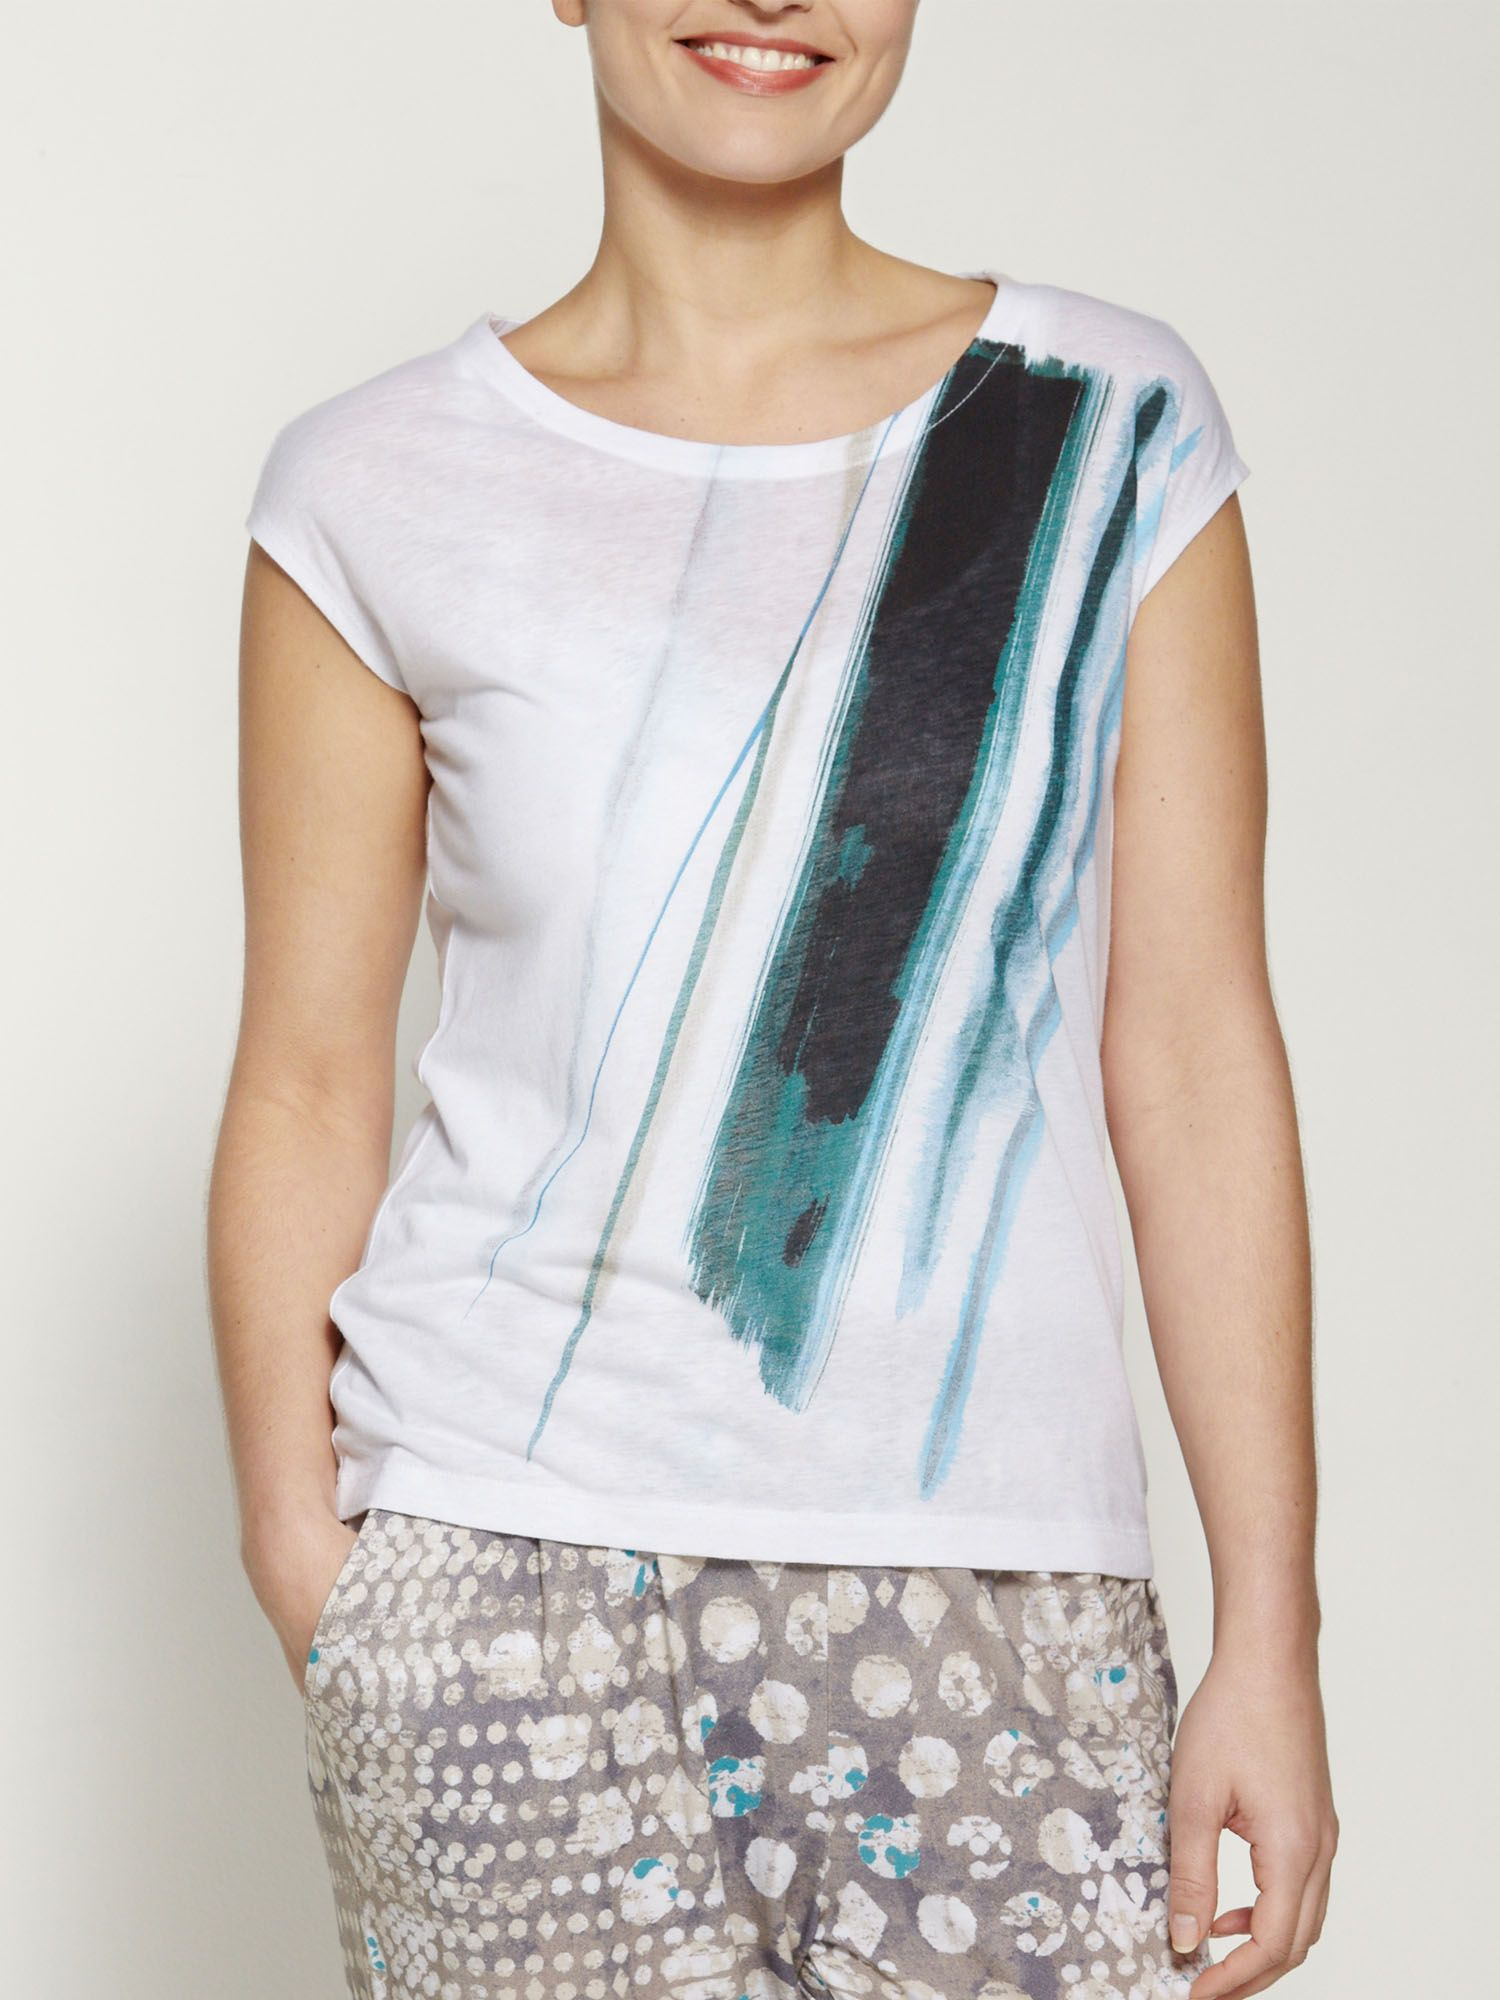 Linen cotton mix printed t-shirt